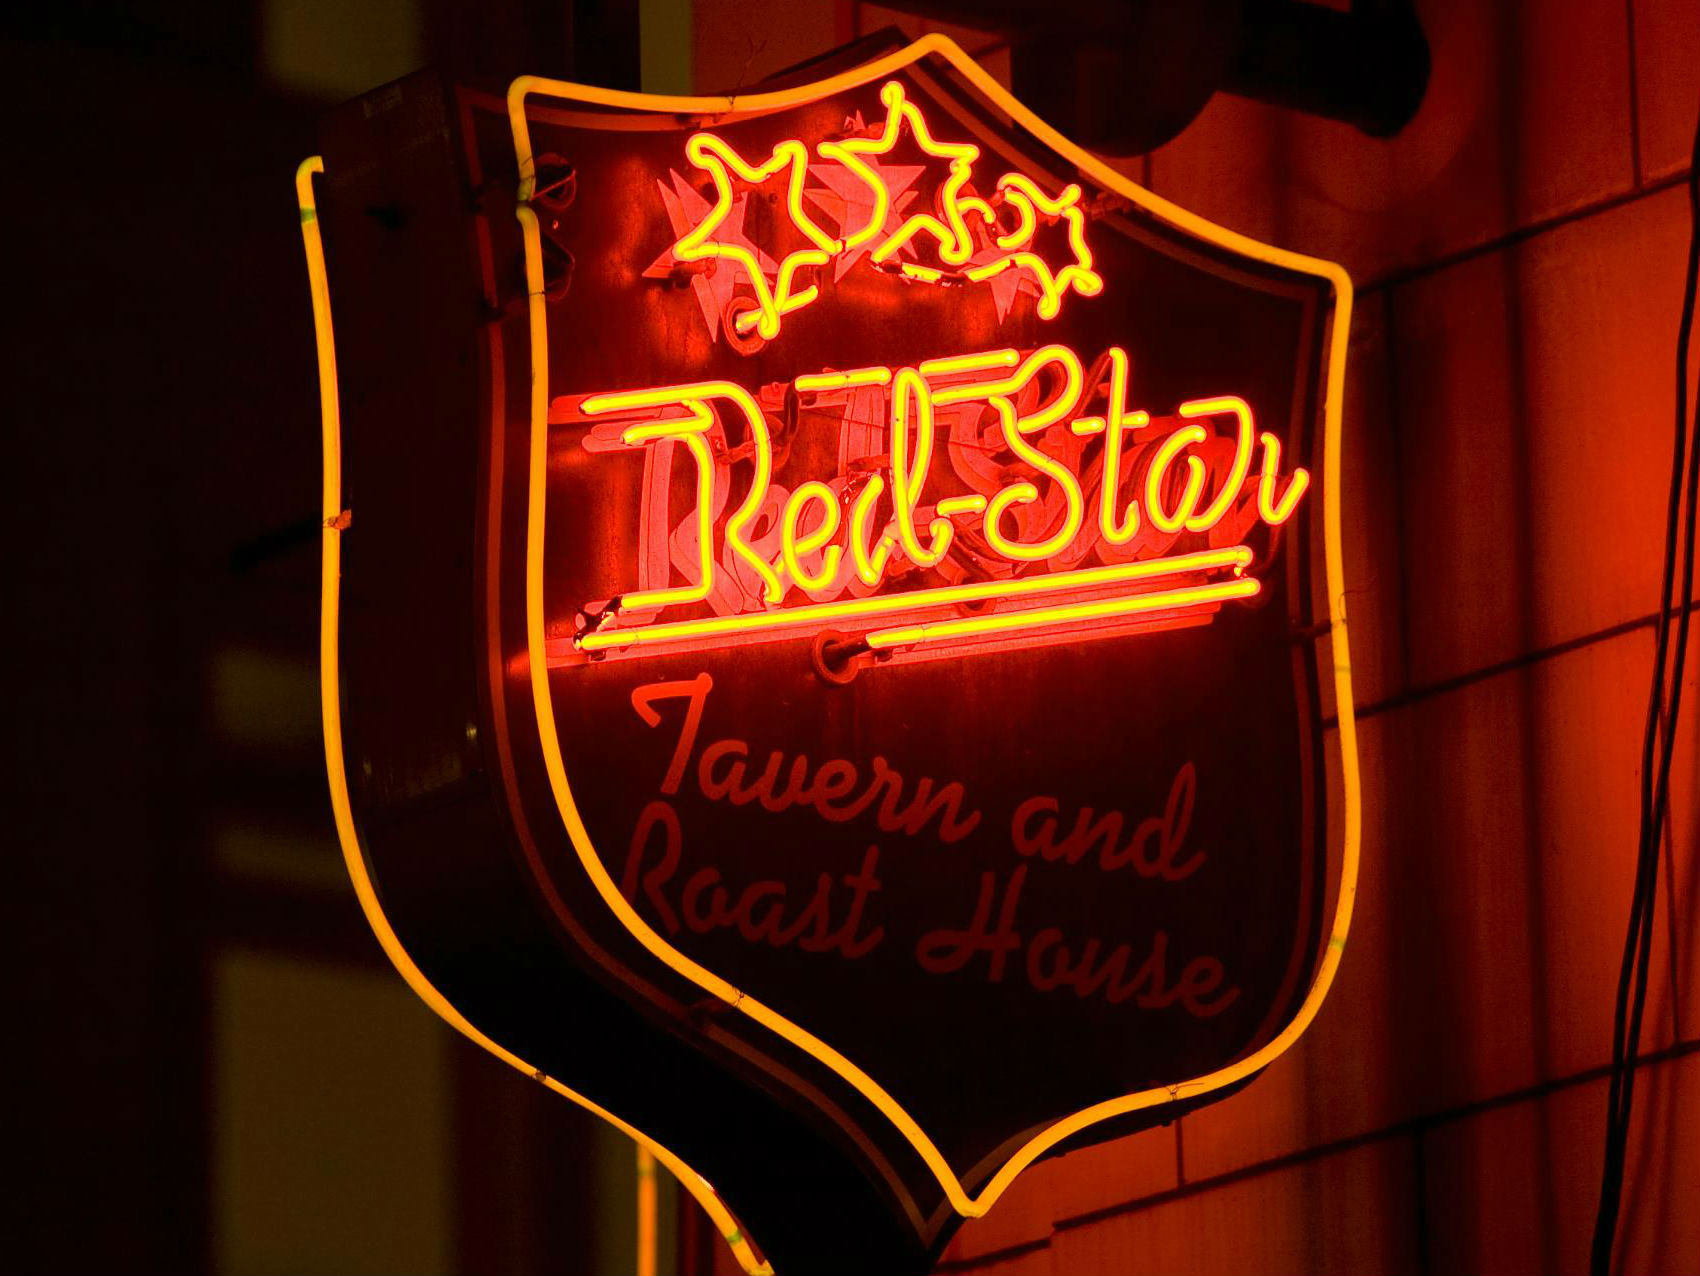 Red Star Tavern and Roast House photo